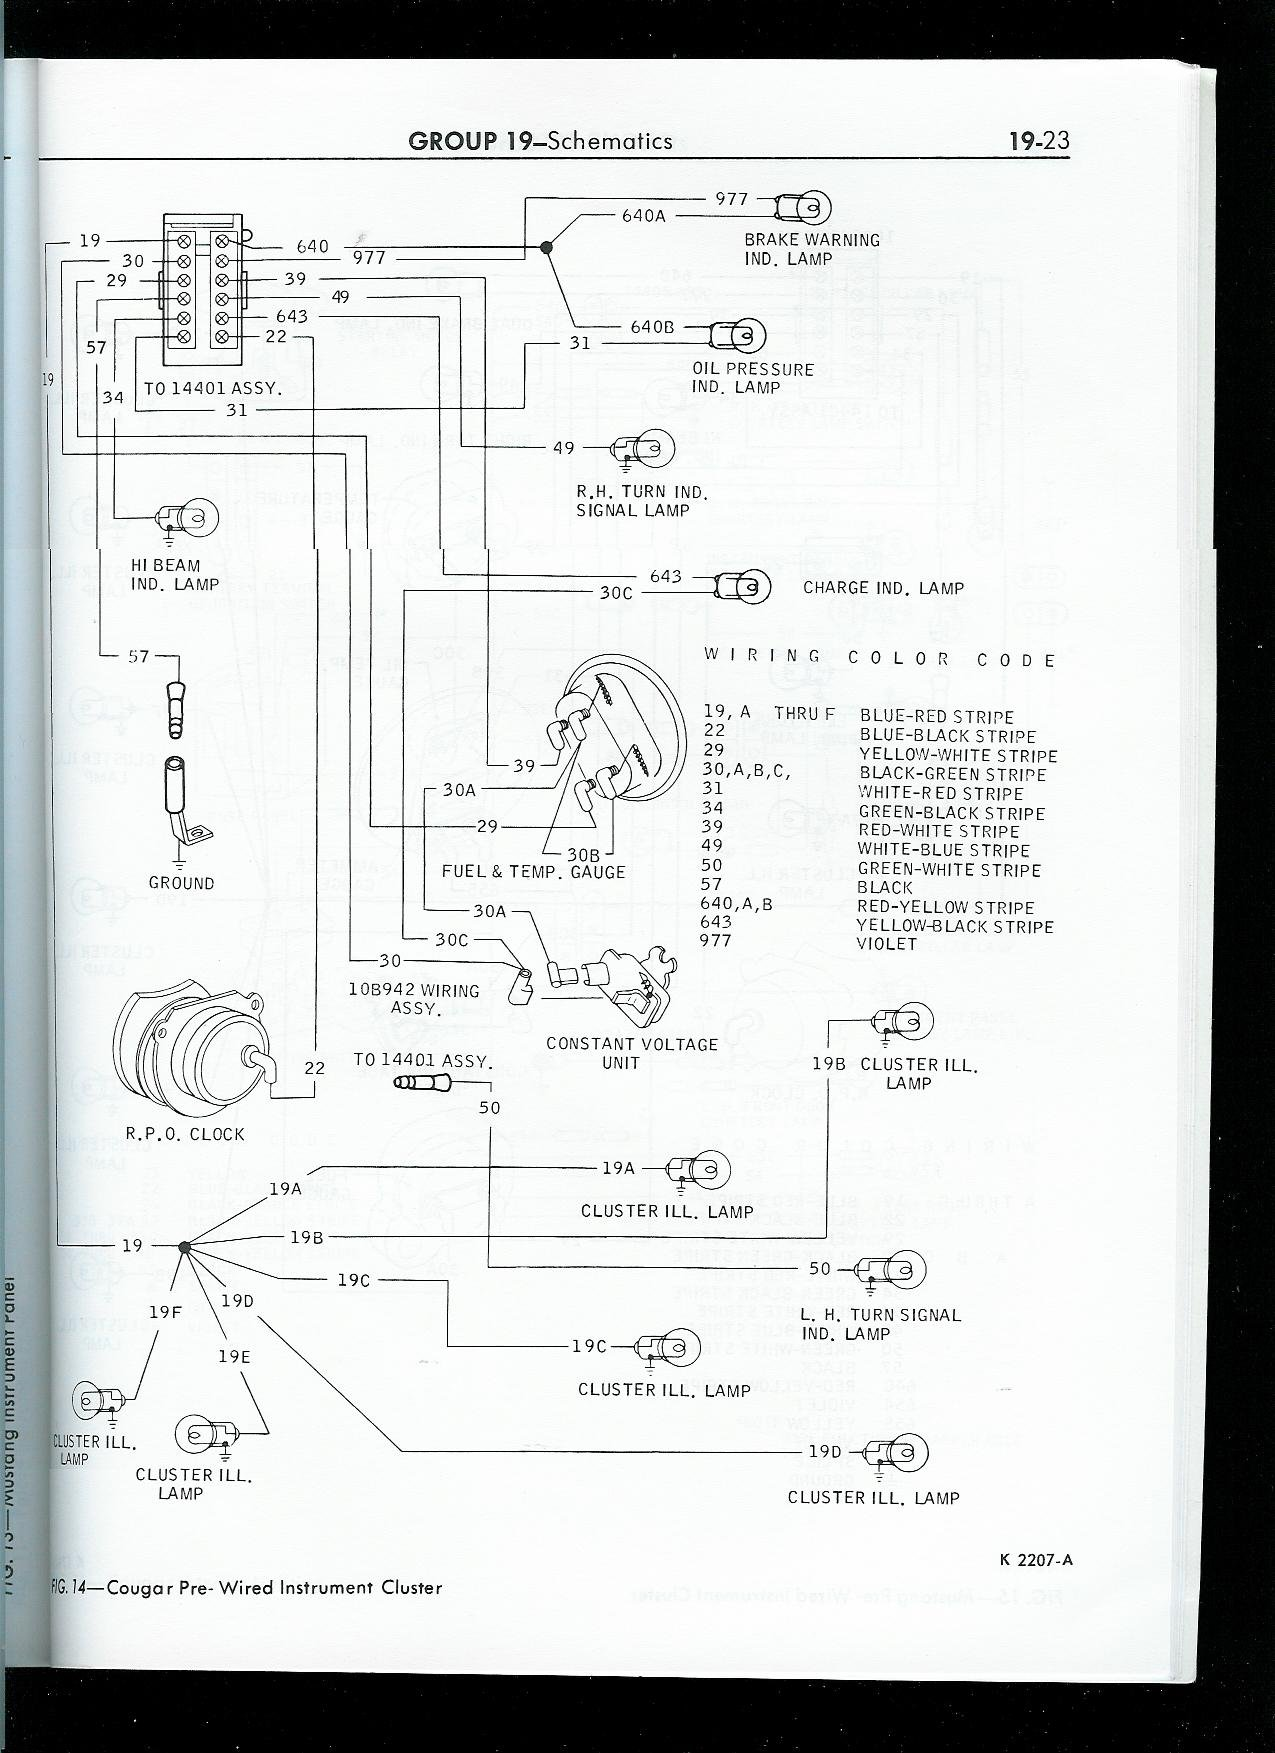 1967 Mustang Instrument Cluster Wiring Diagram Opinions About 67 Engine Panel Pics Ford Forum Rh Allfordmustangs Com 1966 289